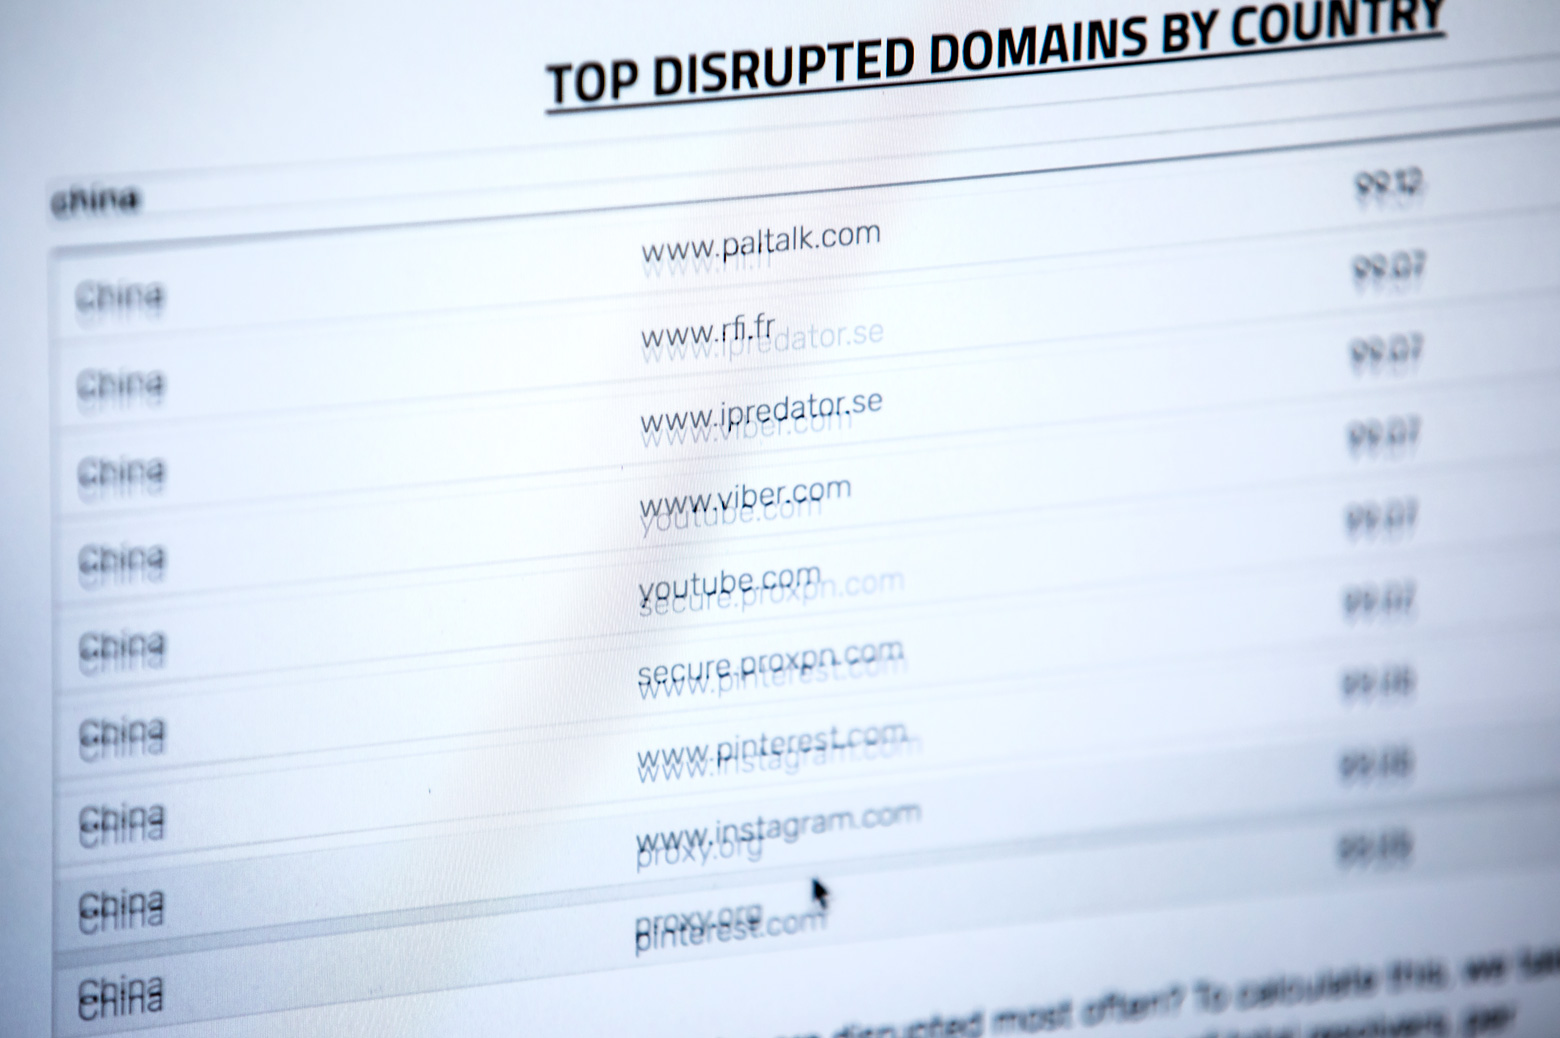 View of a computer screen listing disrupted domains